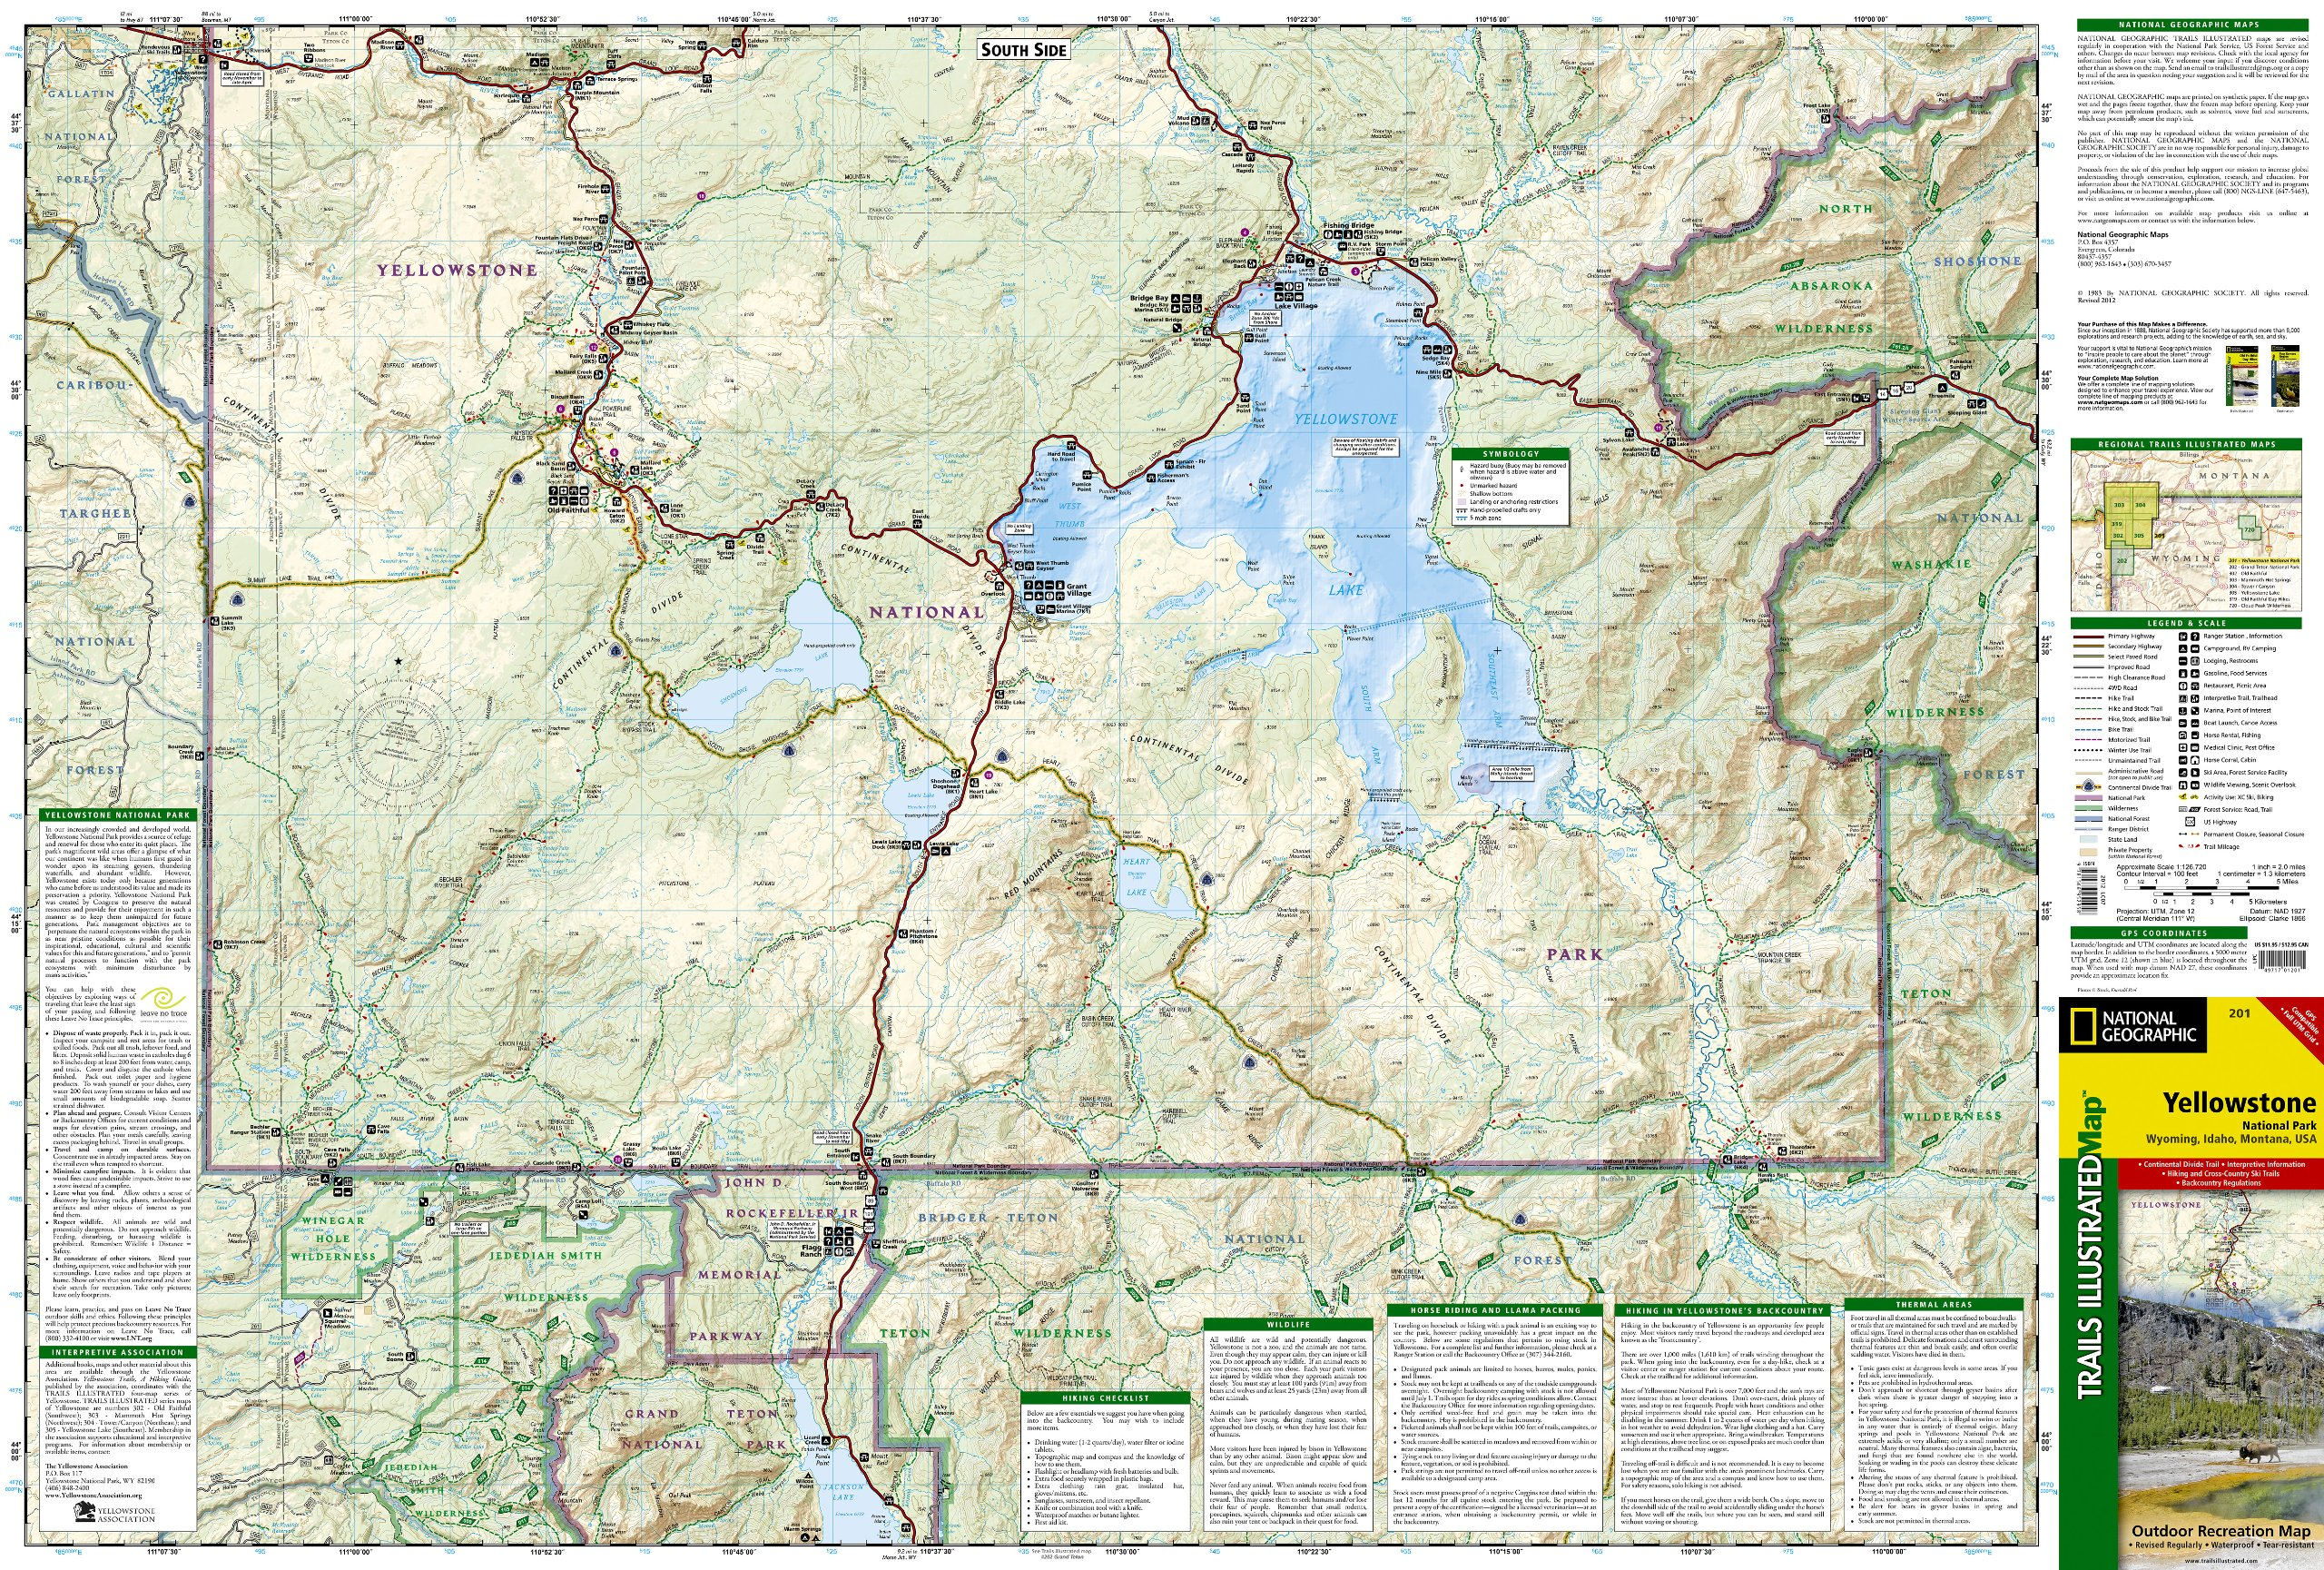 yellowstone  trails illustrated map np (gps compatible) amazoncouknational geographic  books. yellowstone  trails illustrated map np (gps compatible